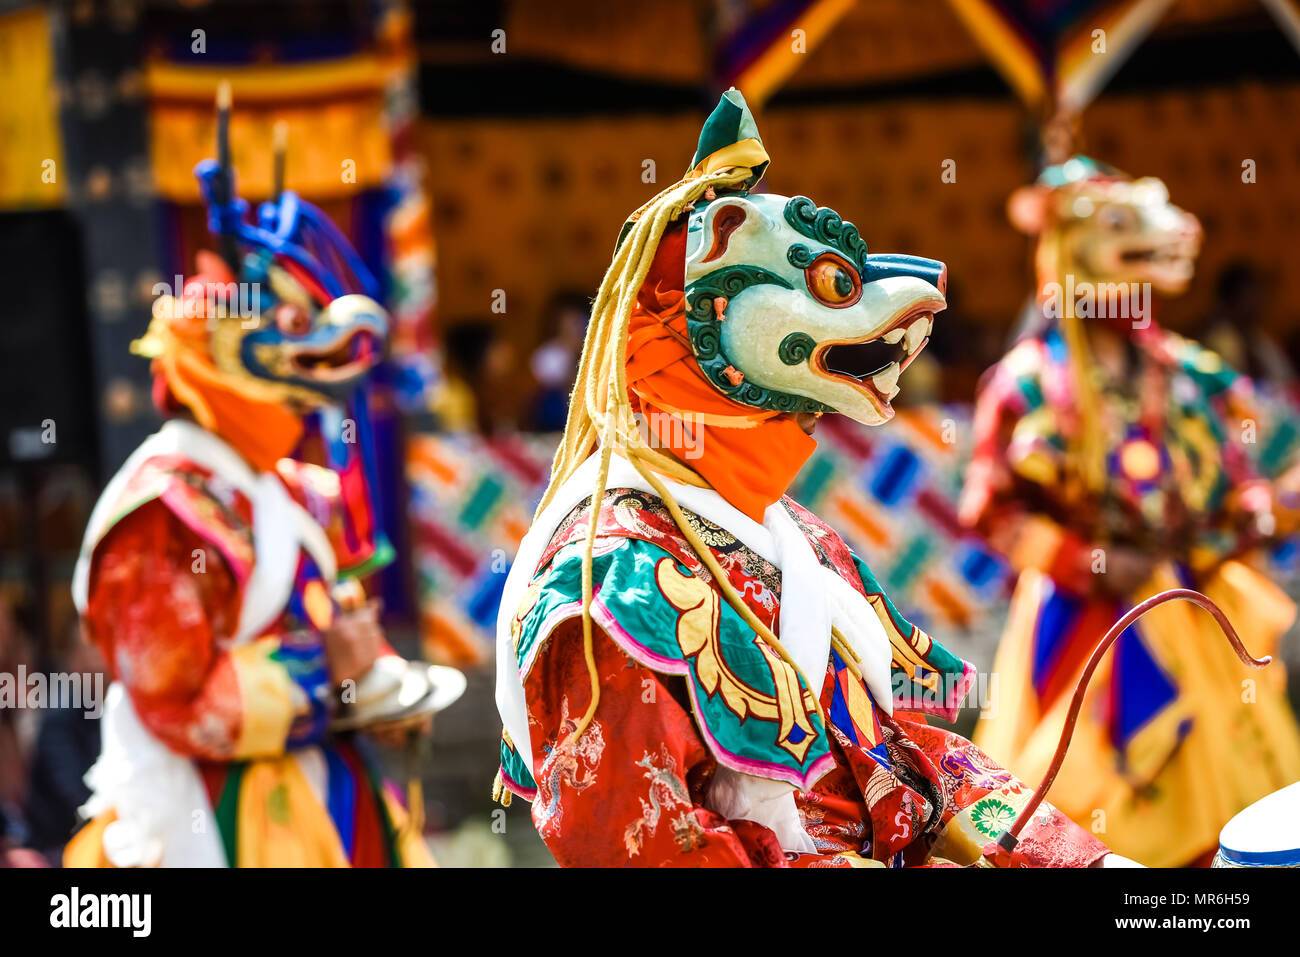 Dancer at Mask Dance, Religious Tsechu Monastery Festival, Gasa District District District Tshechu Festival, Gasa - Stock Image